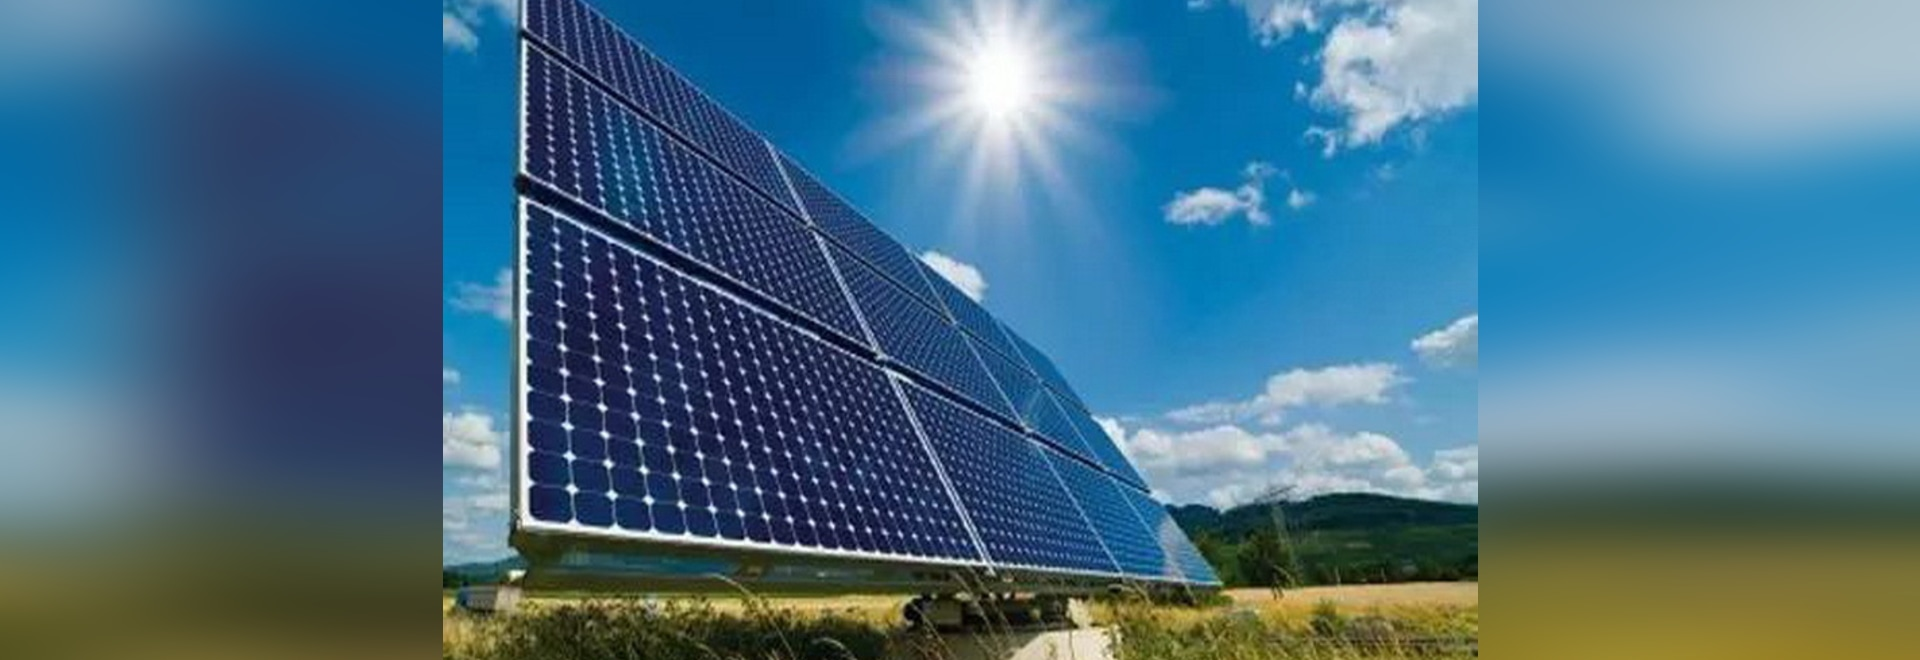 Solar Tracker (Single Axis and Dual Axis) Market for Solar PV, CPV, CSP